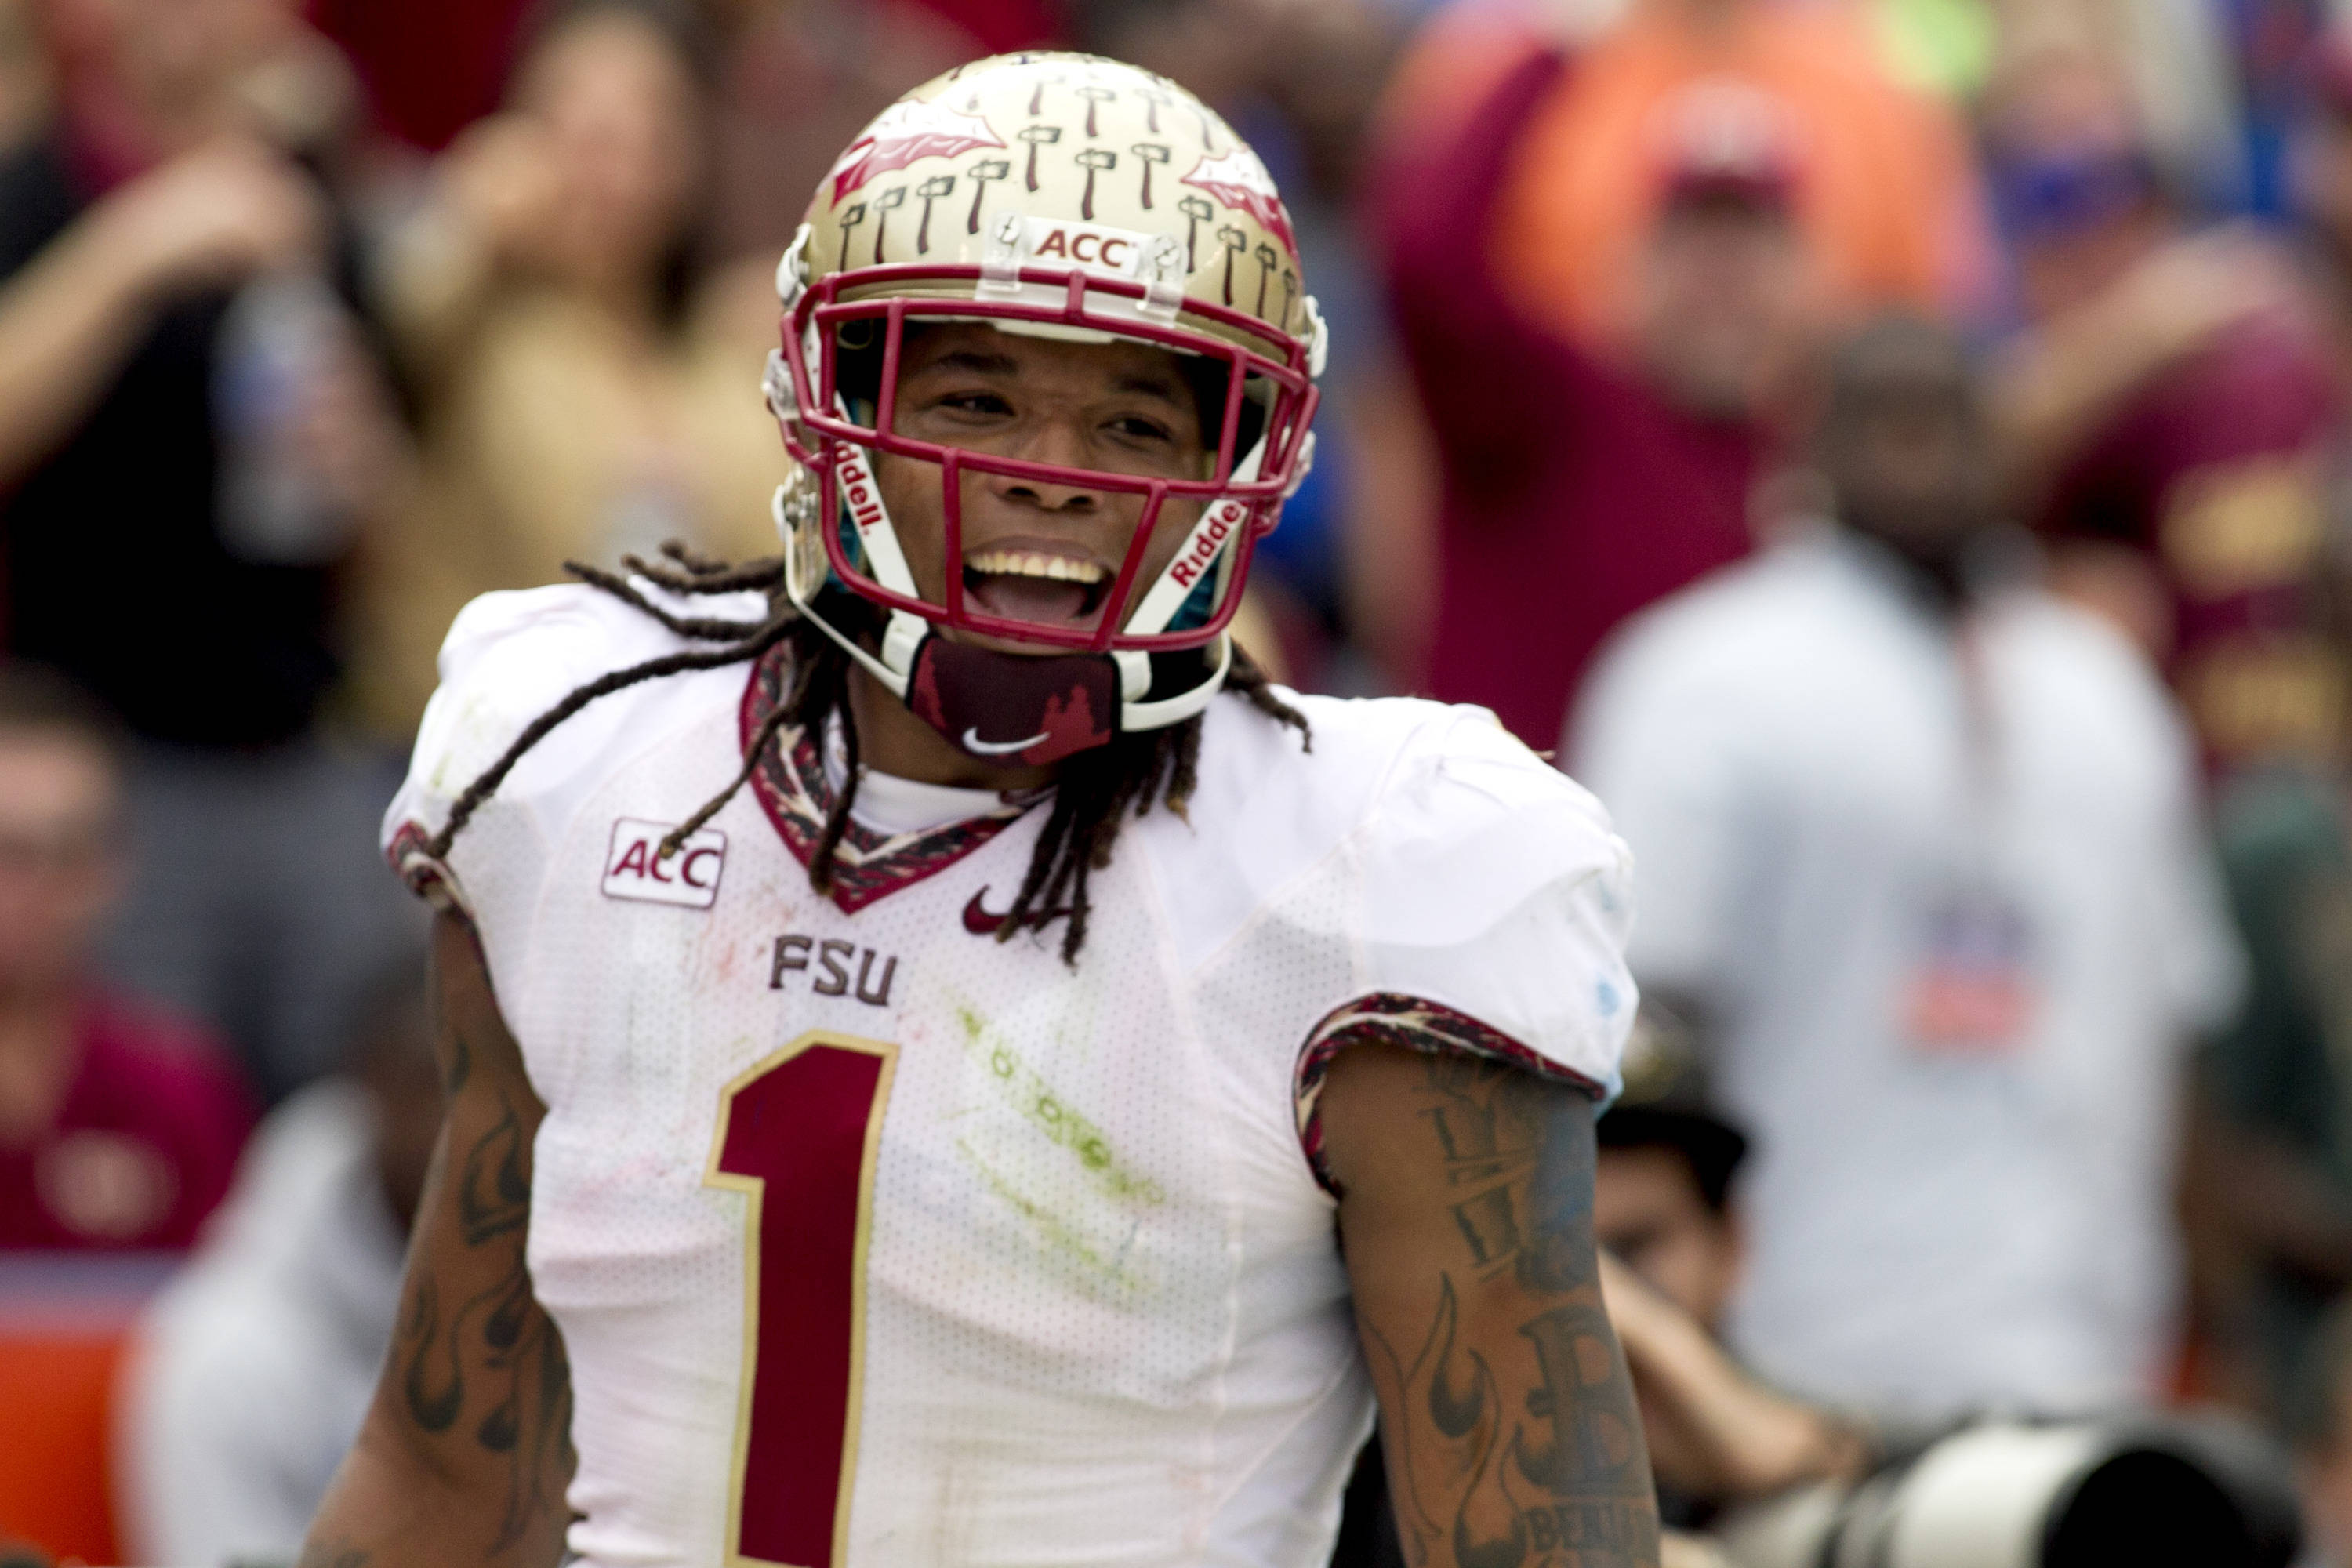 Kelvin Benjamin (1) is all smiles after his touchdown catch, FSU vs Florida, 11-30-13,  (Photo by Steve Musco)